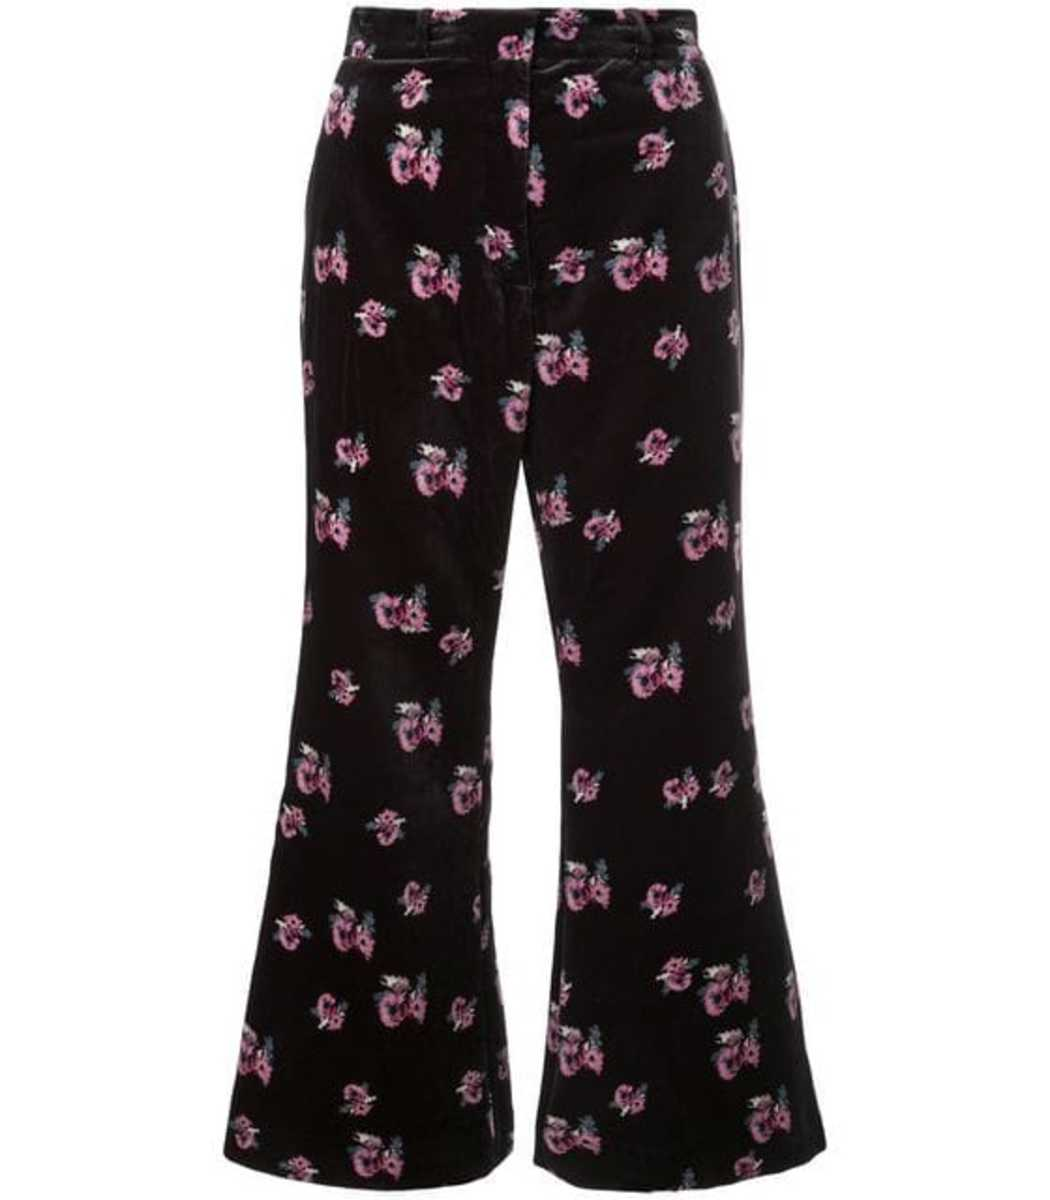 Racil Black Floral Print Trousers